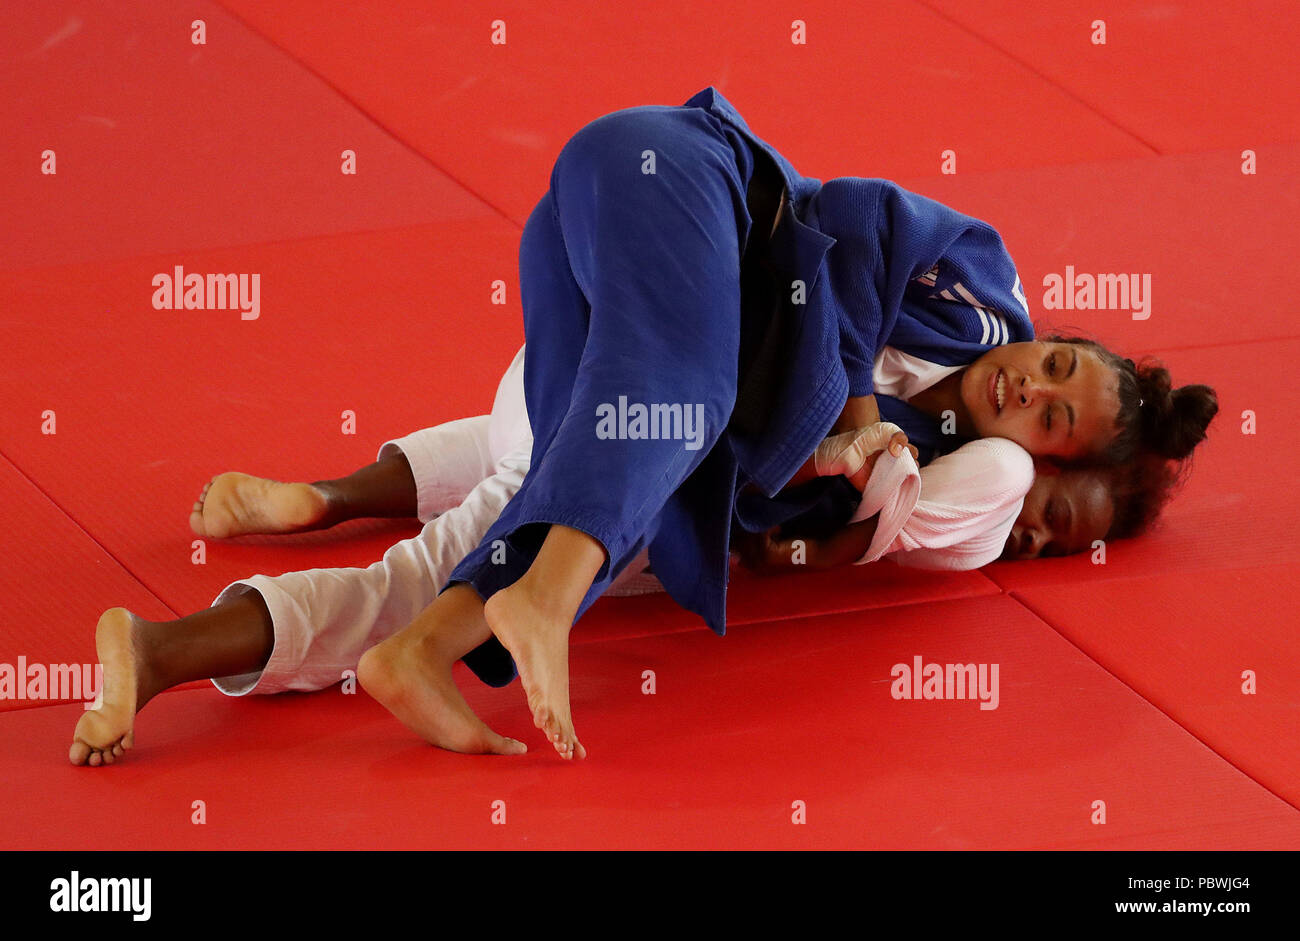 Barranquilla, Colombia. 30th July, 2018. Dominican Diana de Jesus (down) in action against Mexican Luz Olivera during the judo competition of the 23rd Central American and Caribbean Games 2018, in Barranquilla, Colombia, 30 July 2018. Credit: Leonardo Munoz/EFE/Alamy Live News - Stock Image